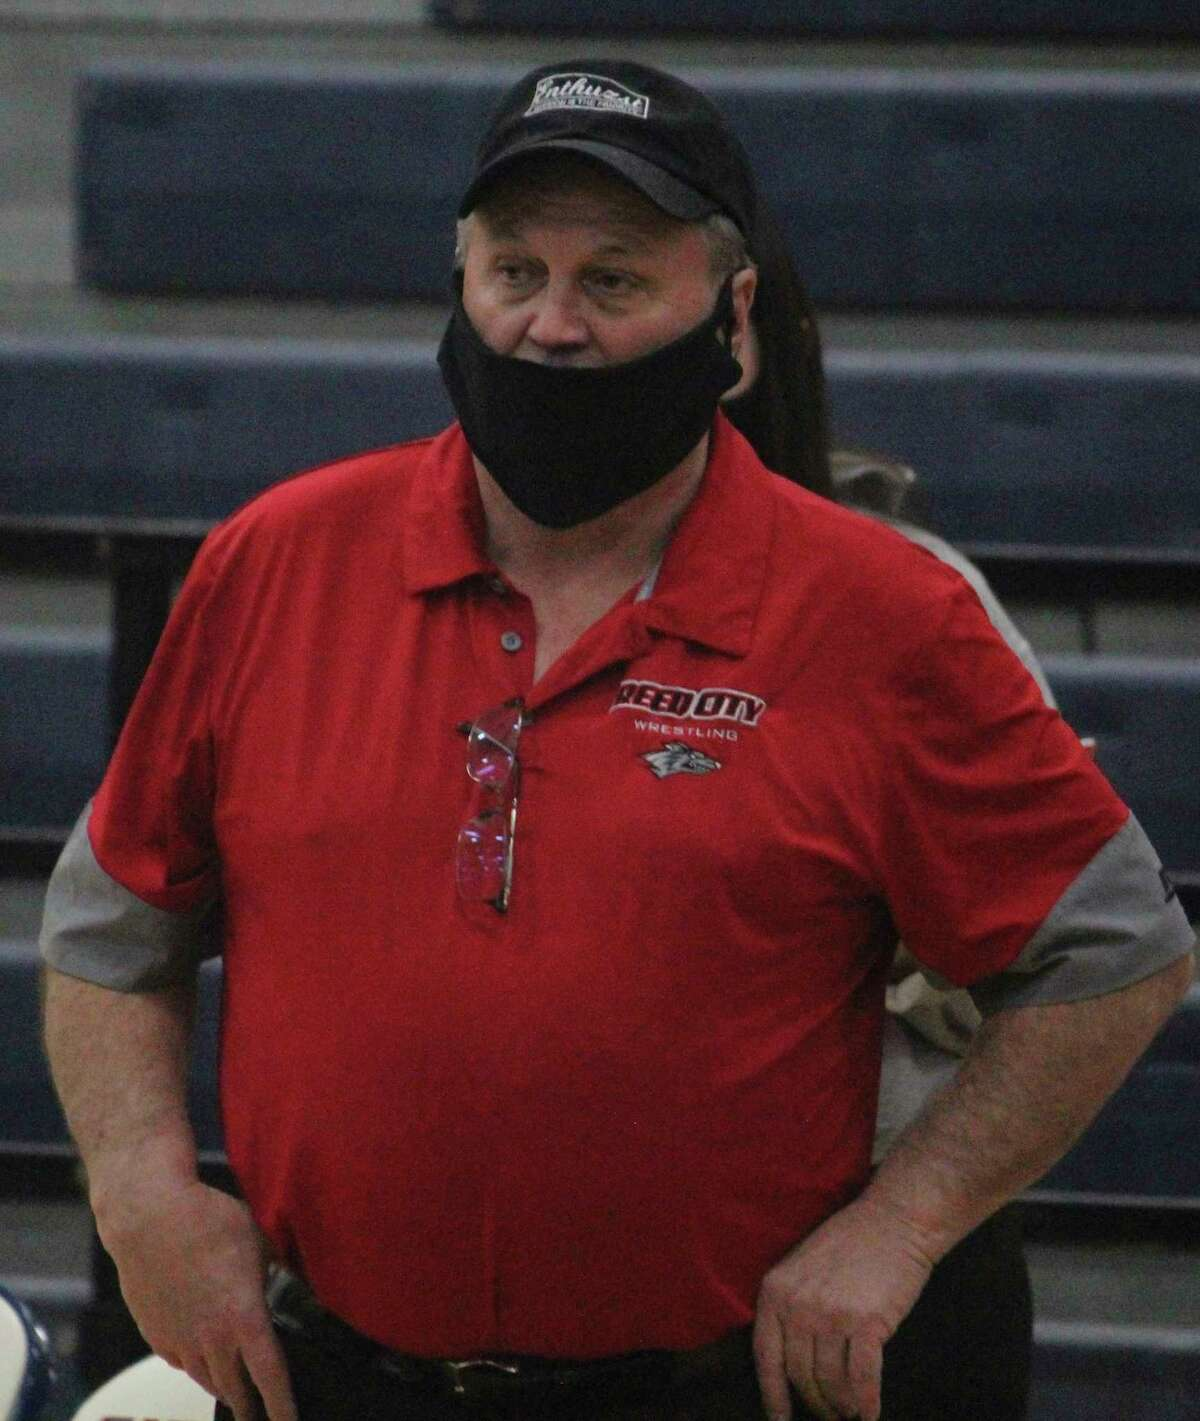 Reed City coach Roger Steig watches the action during a 2021 match. (Pioneer photo/John Raffel)